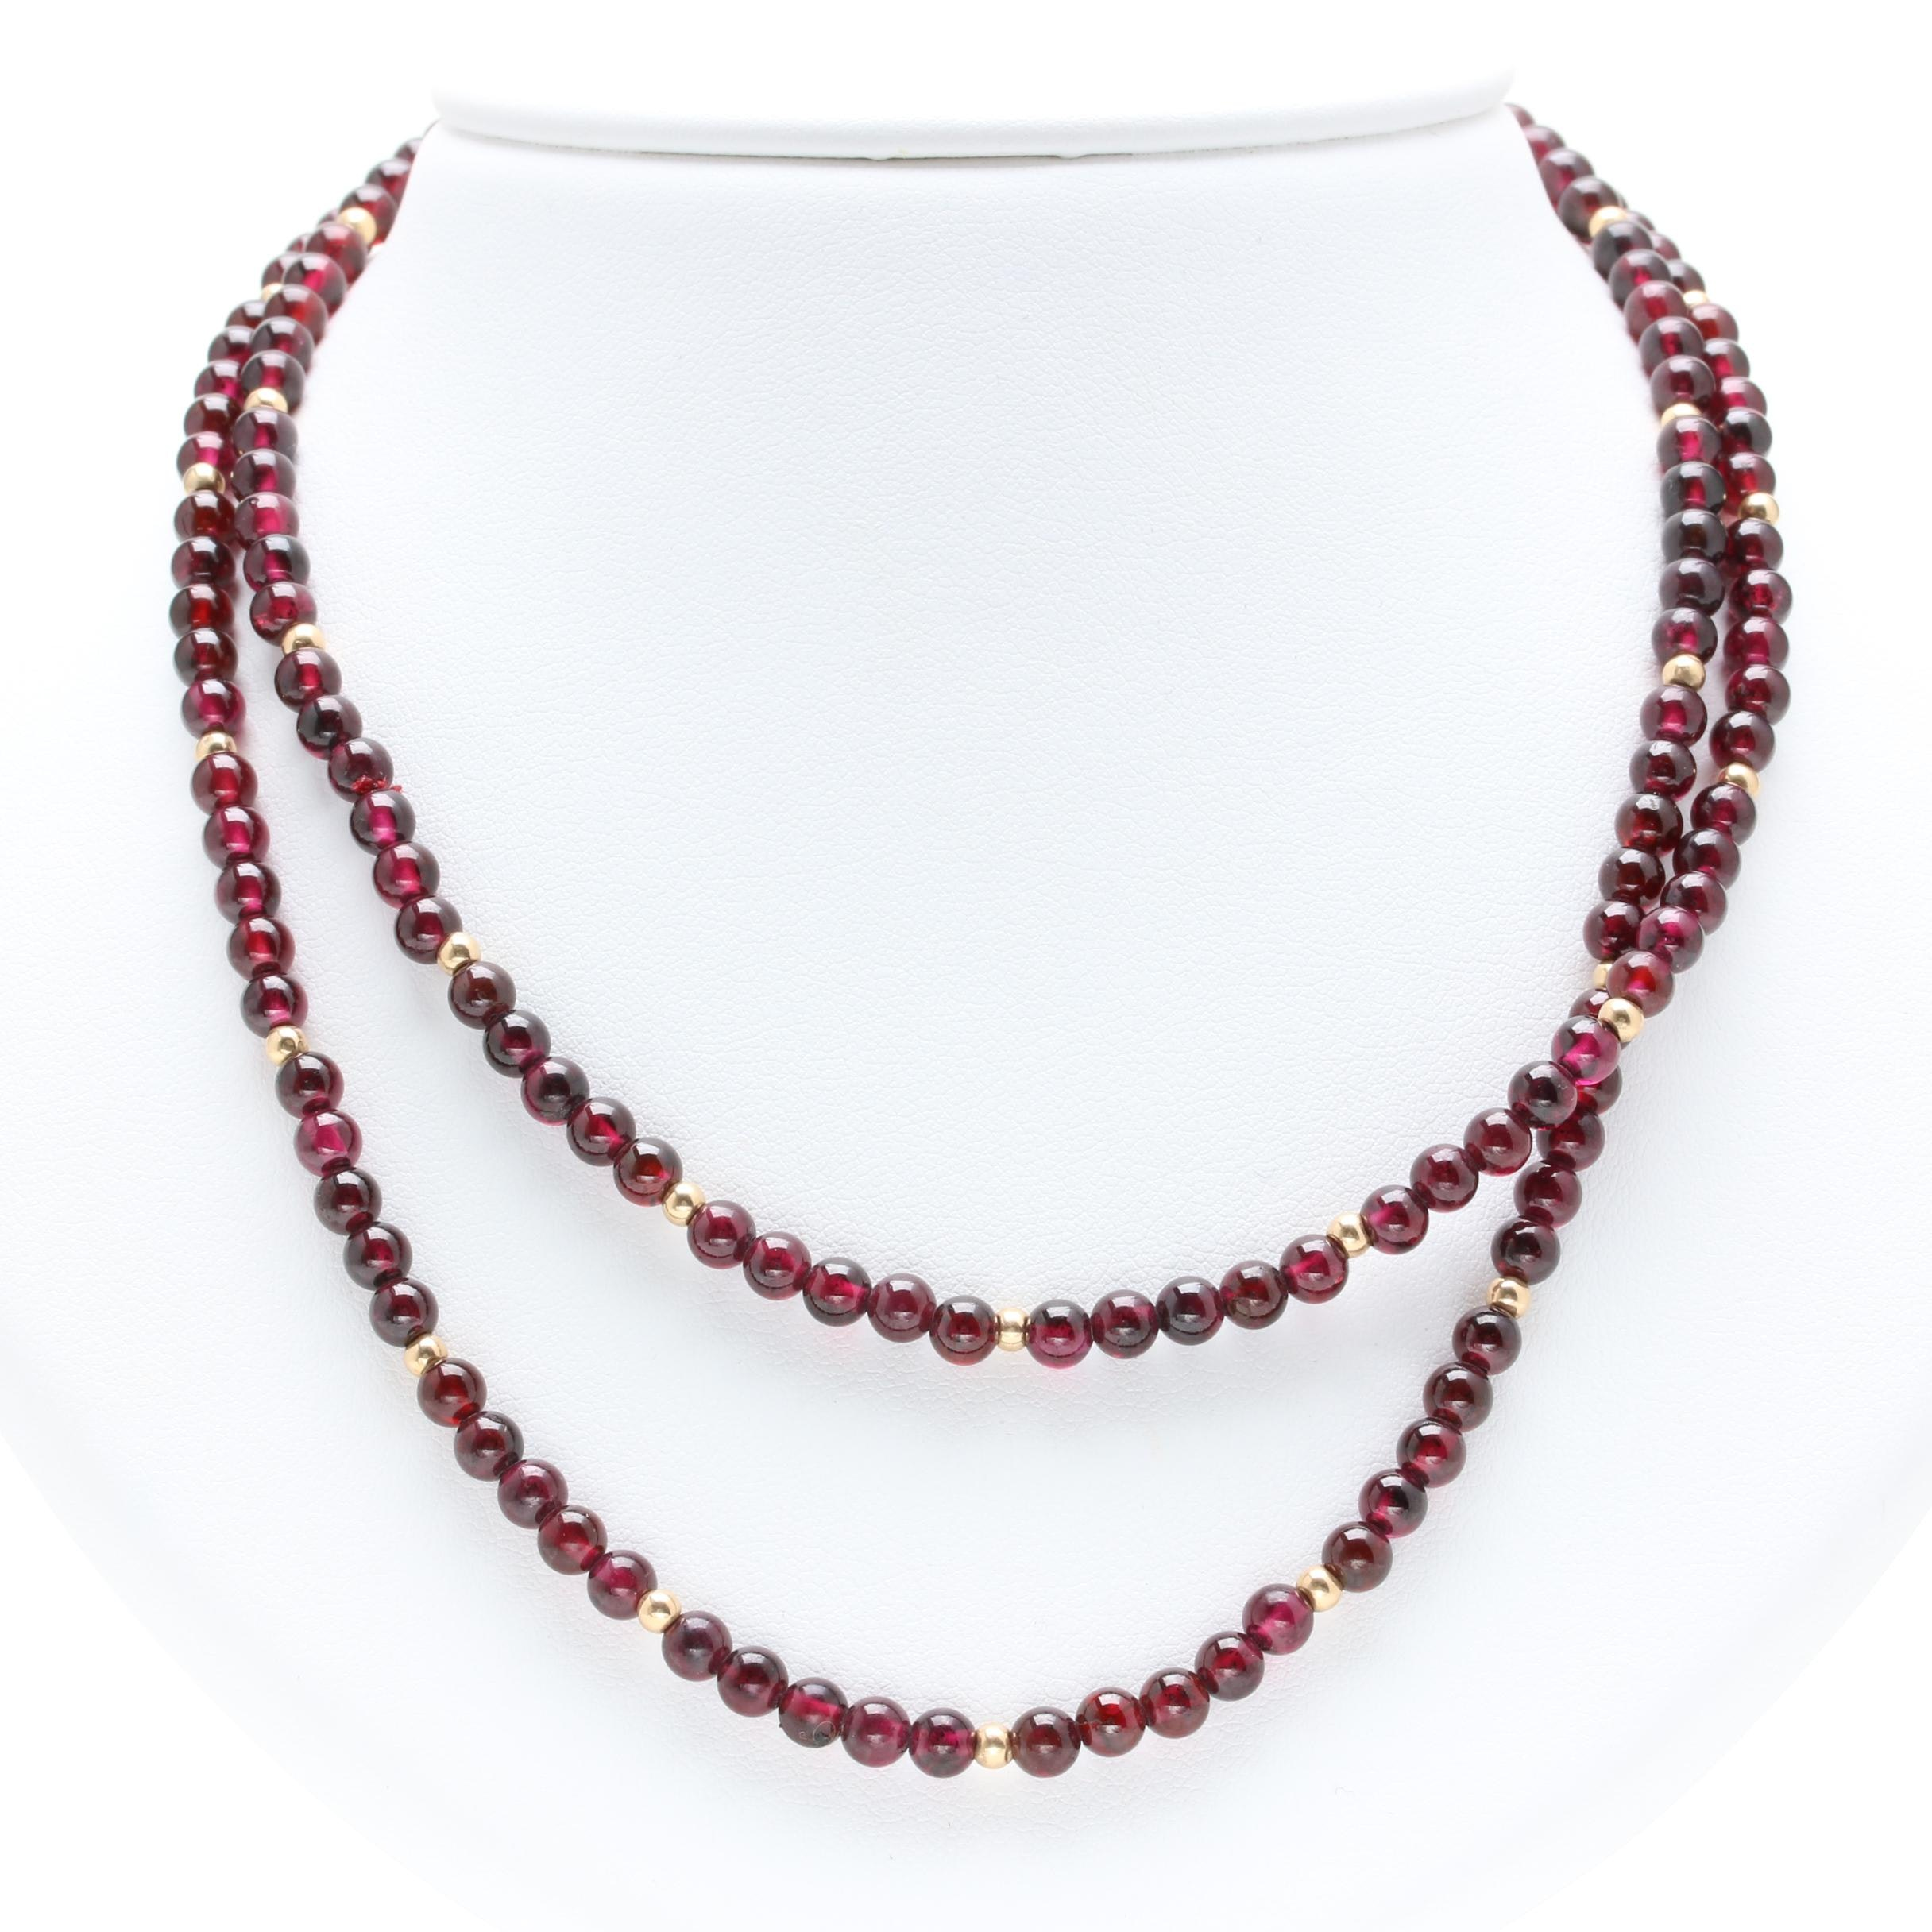 14K Yellow Gold Garnet Beaded Necklace